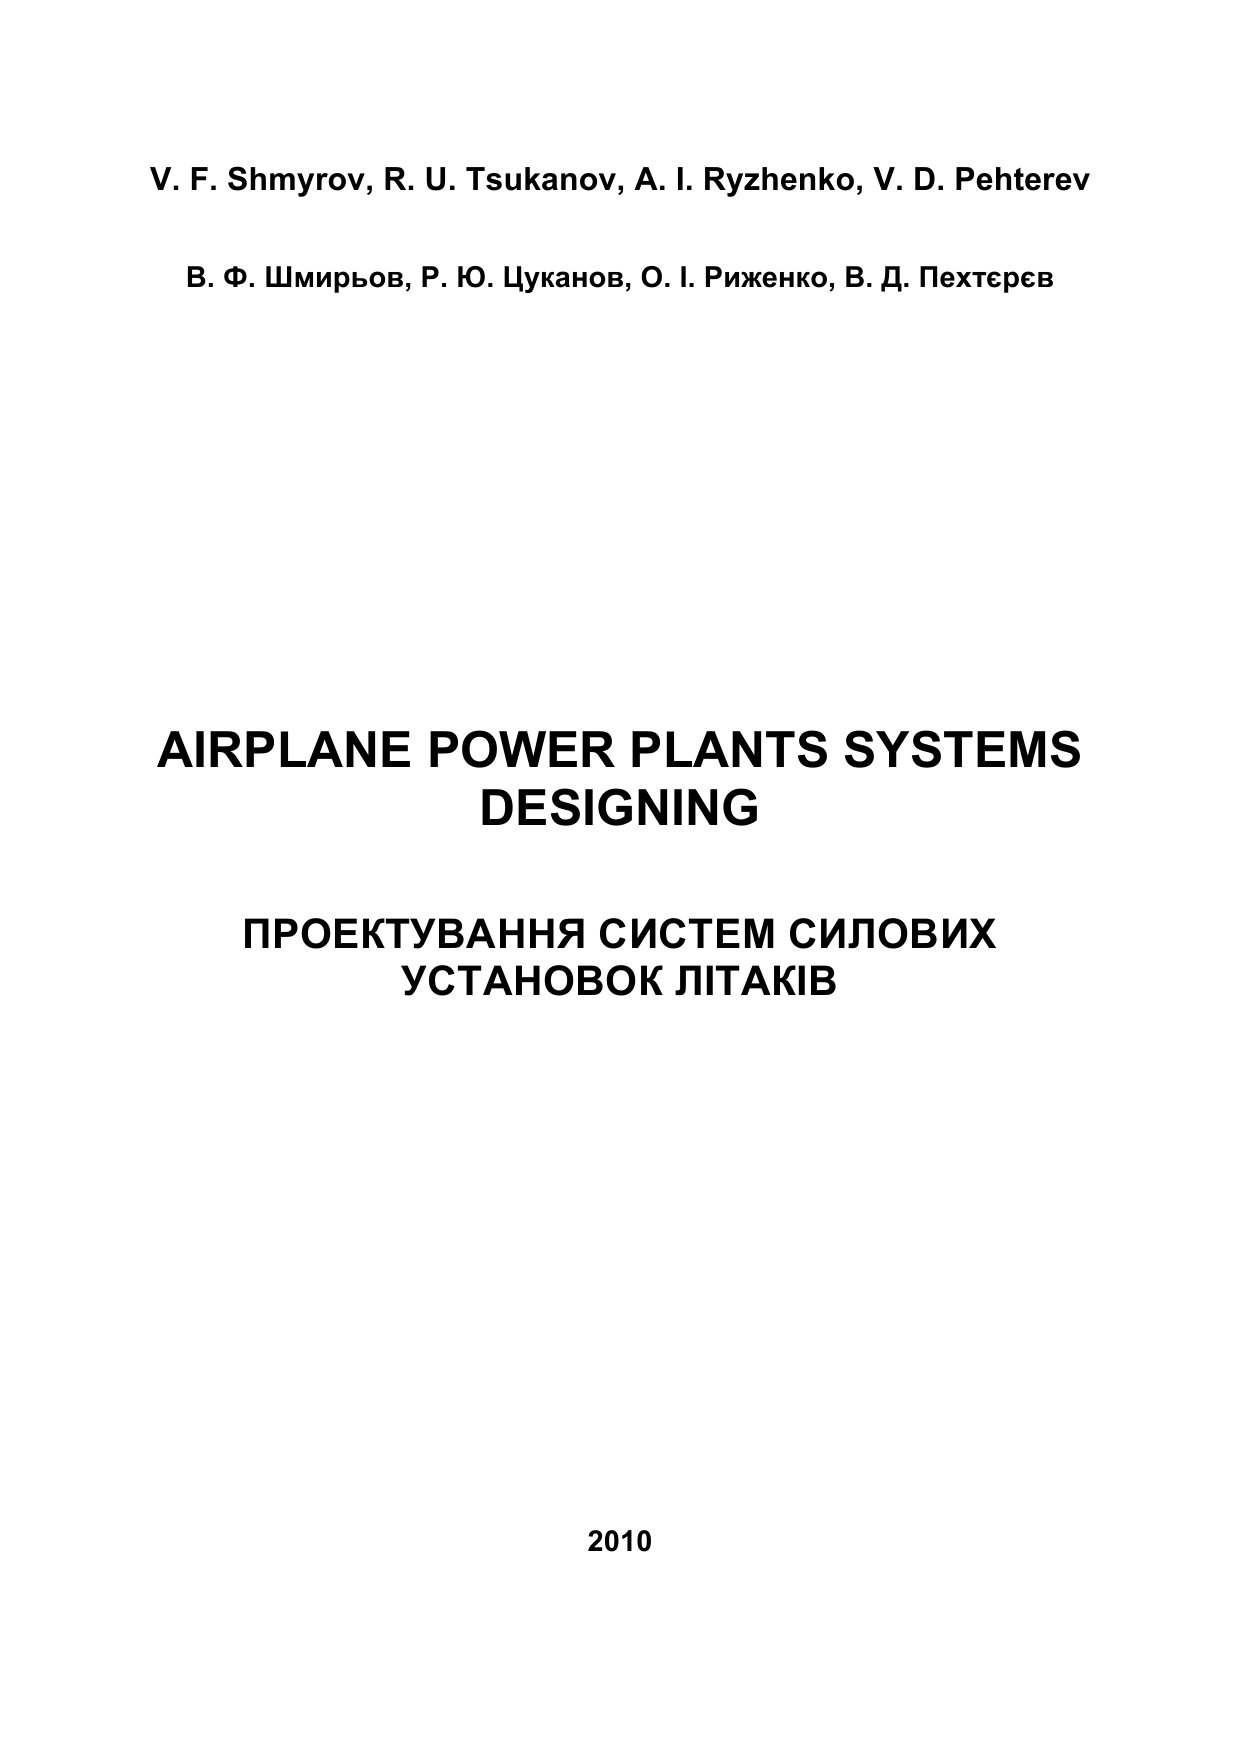 Airplane Power Plants Systems Designing: synopsis